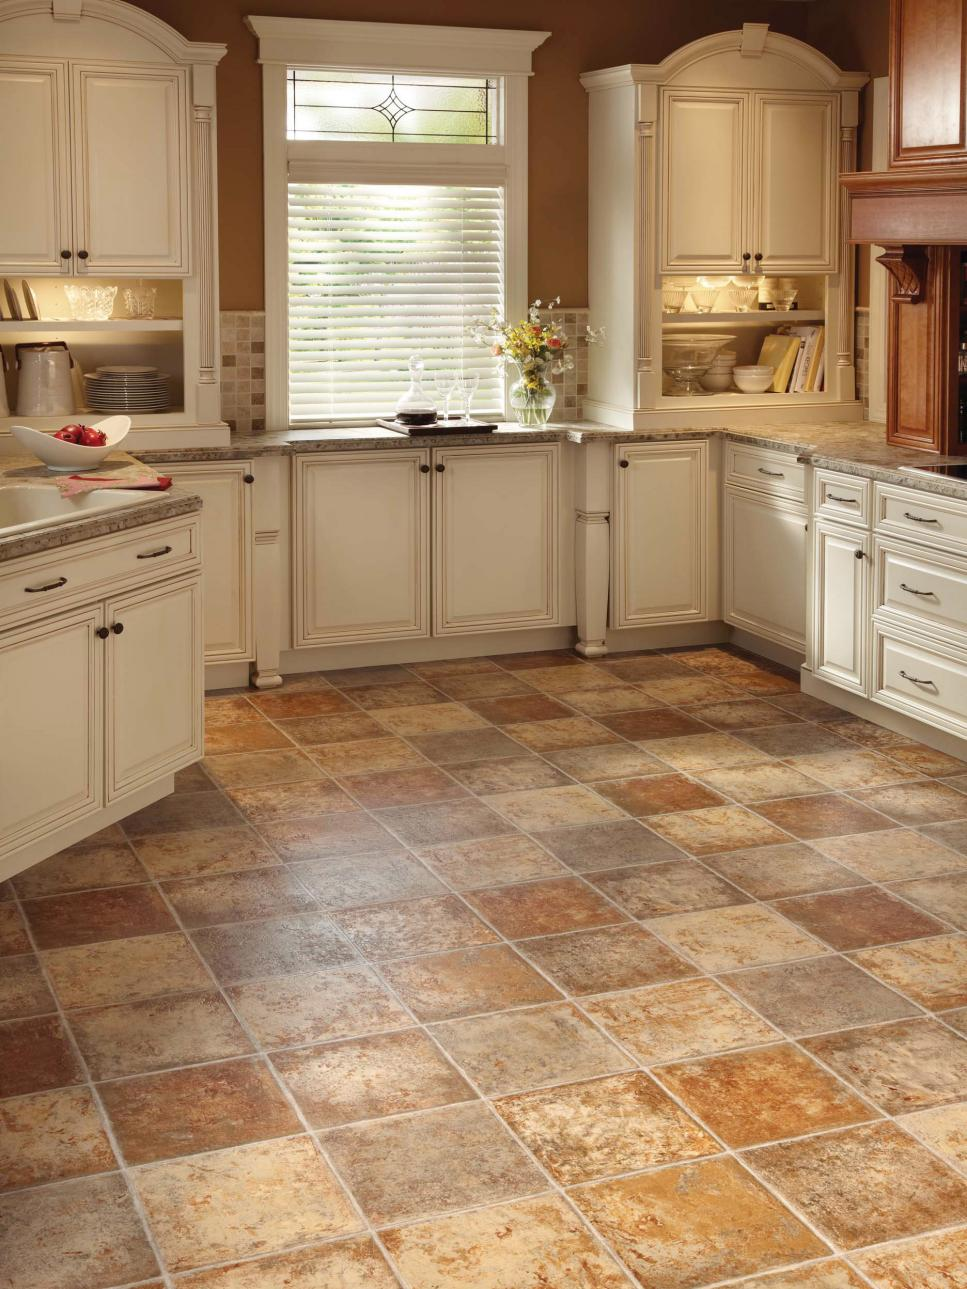 Kitchen floor ceramic tiles